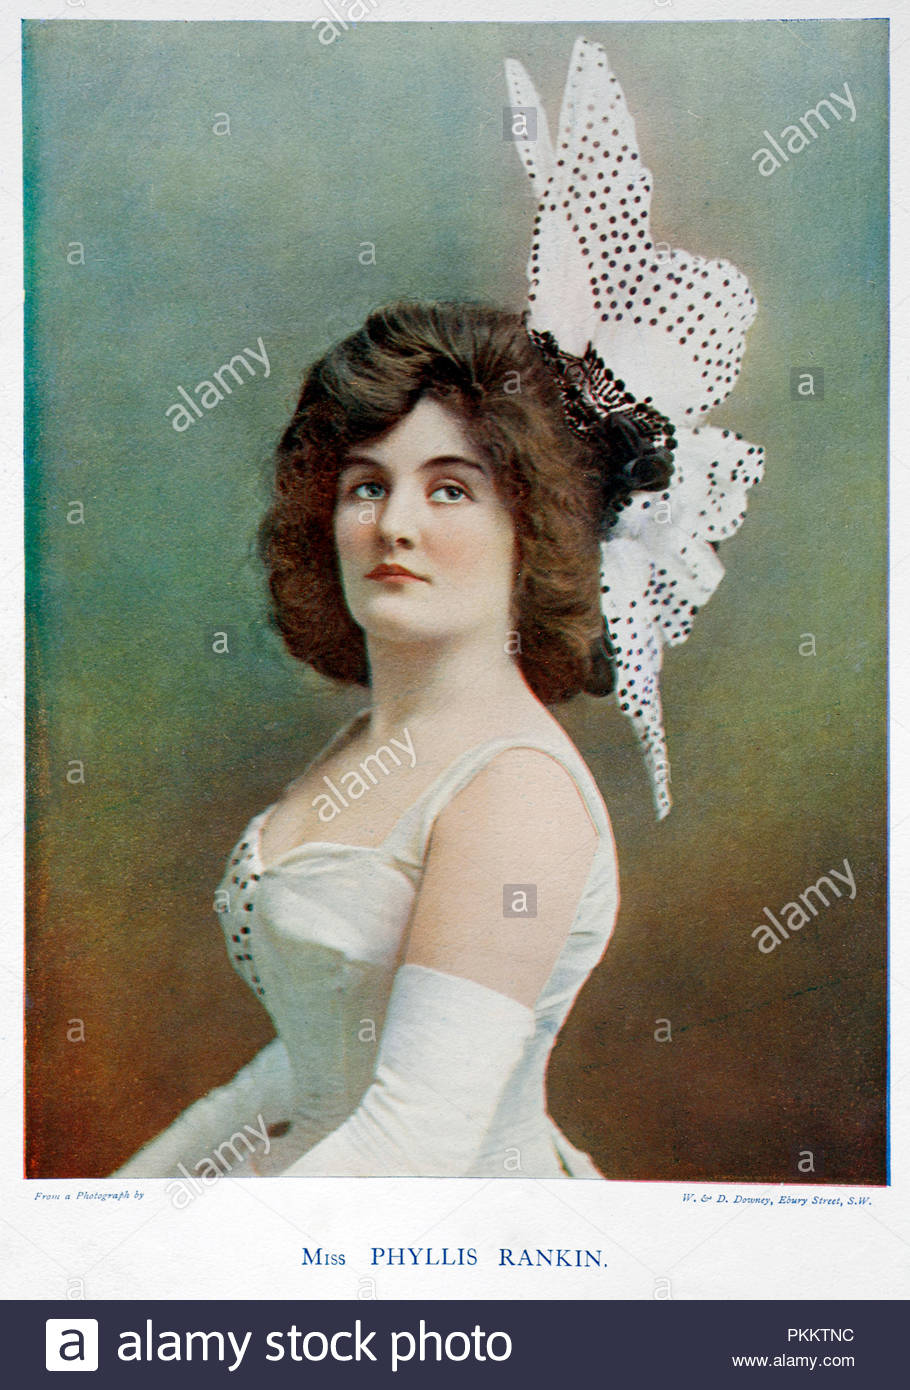 Phyllis McKee Rankin portrait, 1874 – 1934, was an American Broadway actress and singer from the 1880s until the 1920s.  Colour illustration from 1899. - Stock Image